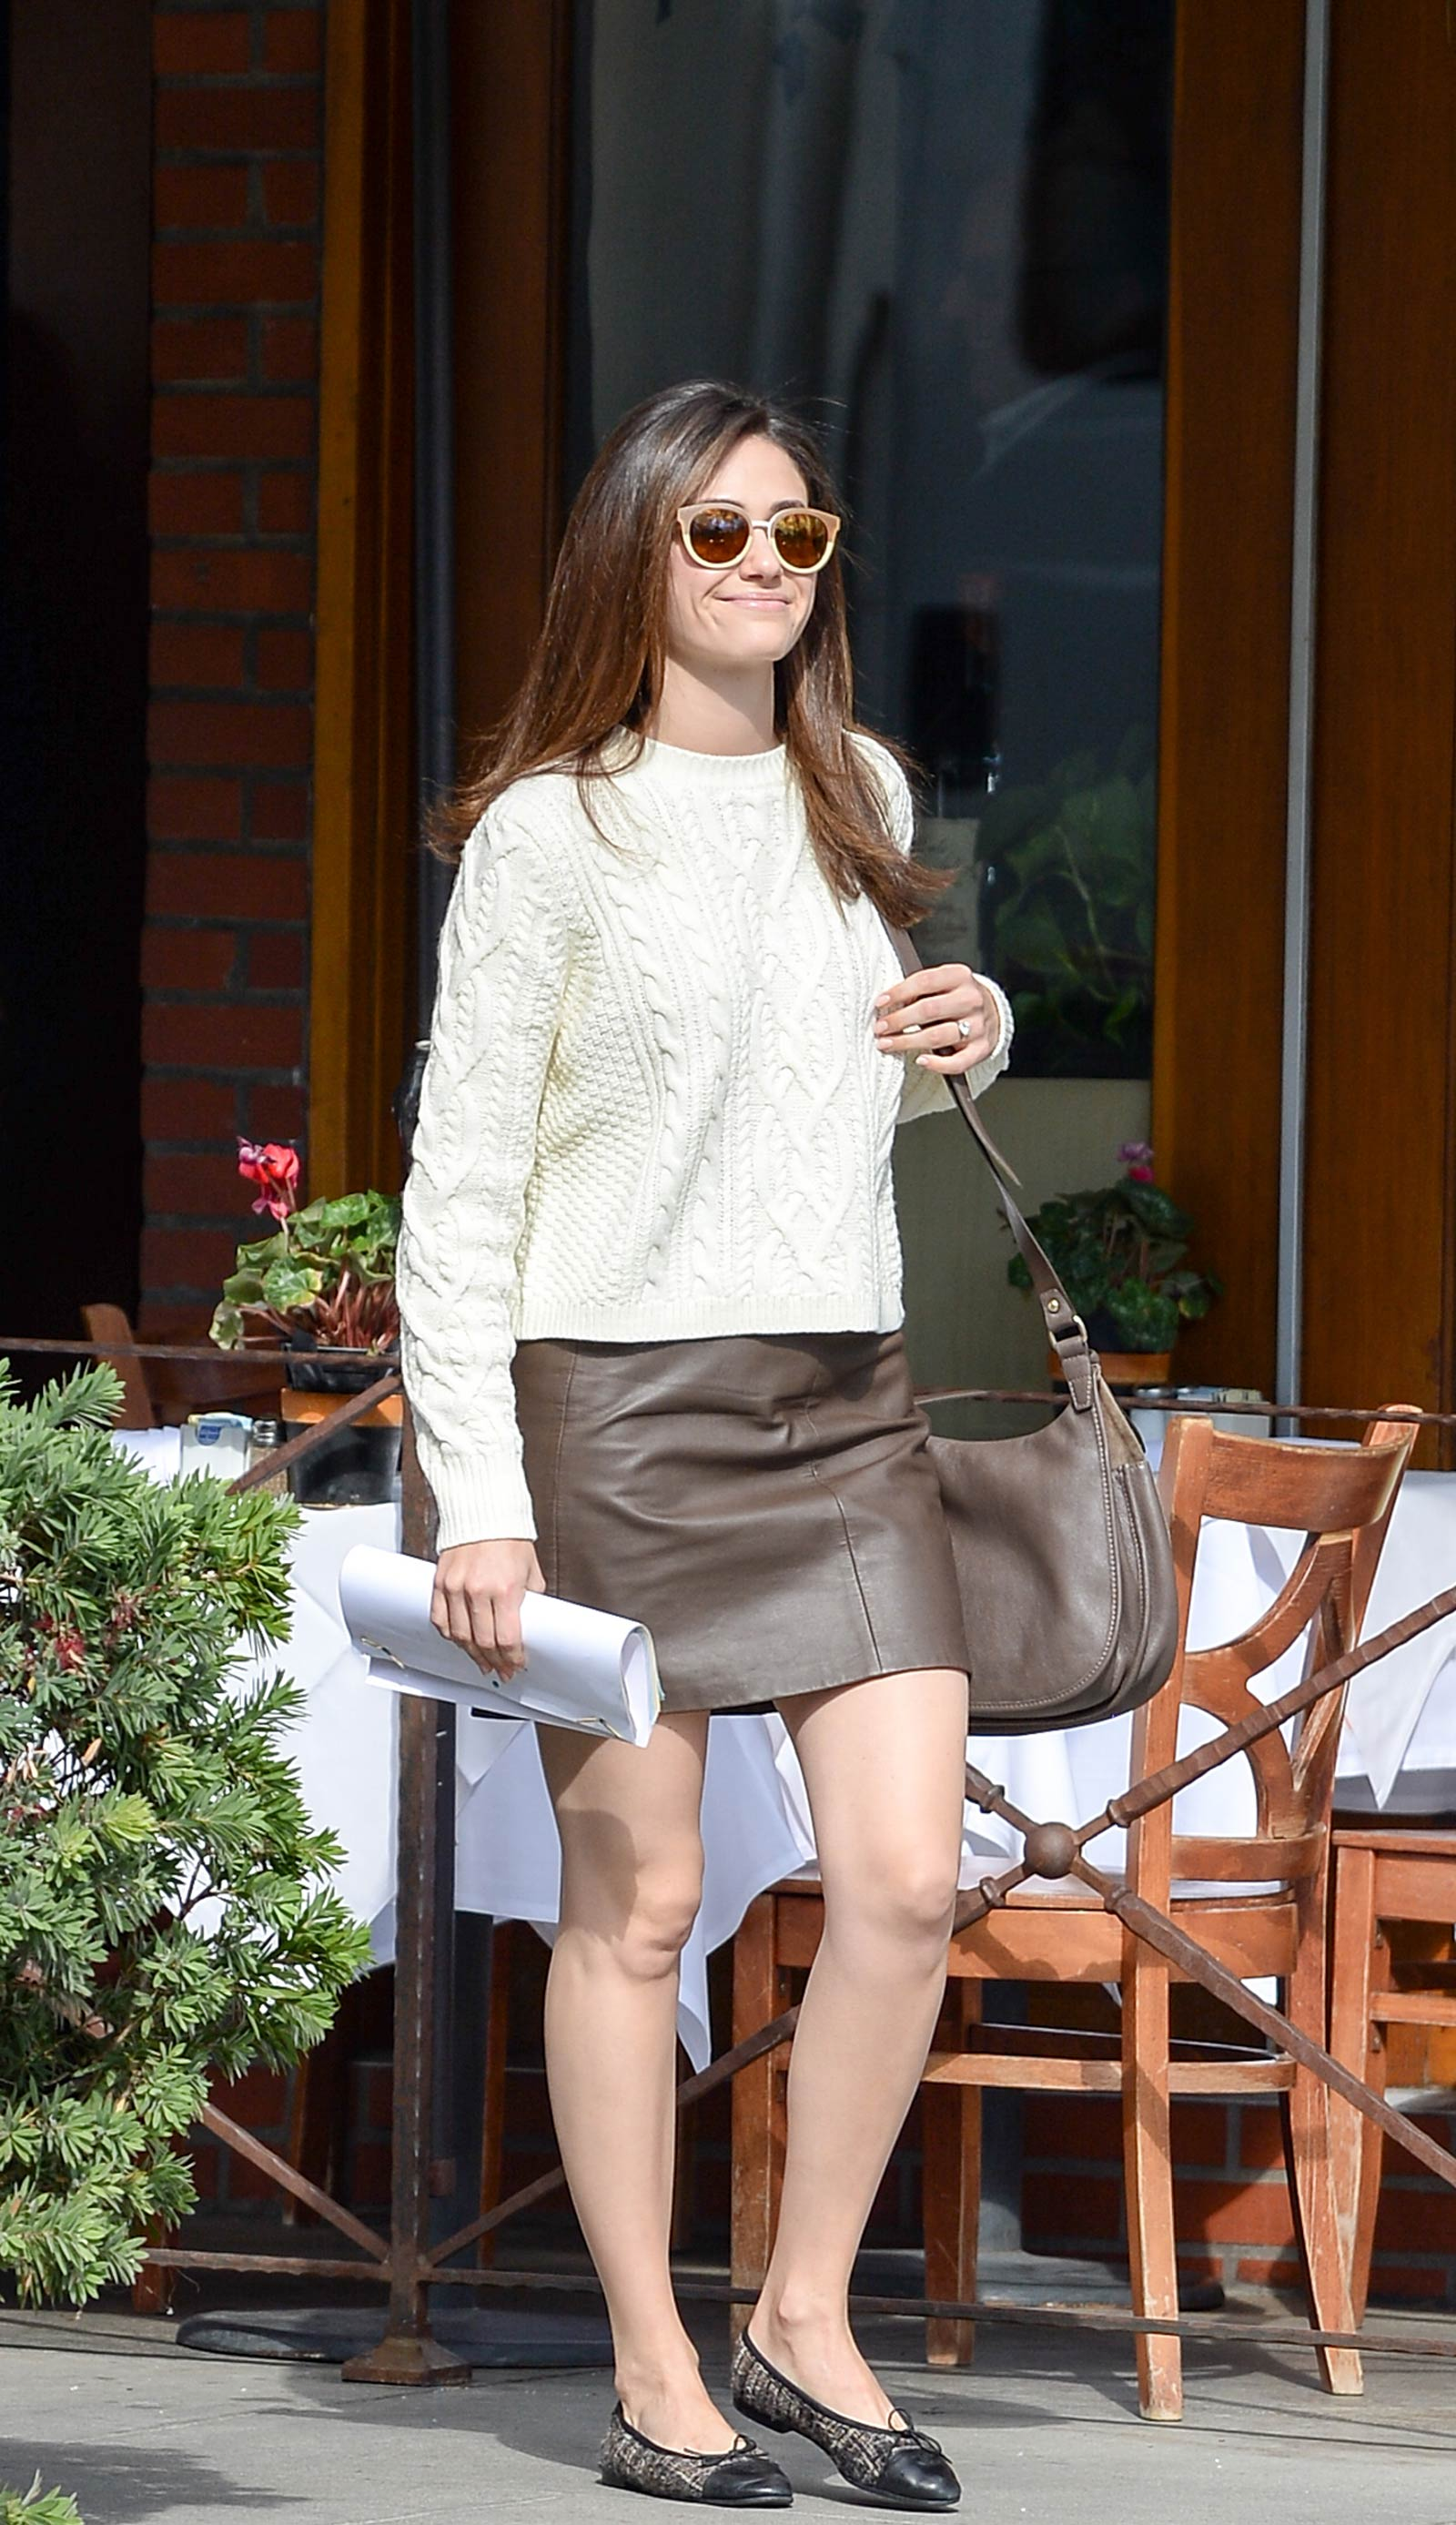 Emmy Rossum heads back to her car